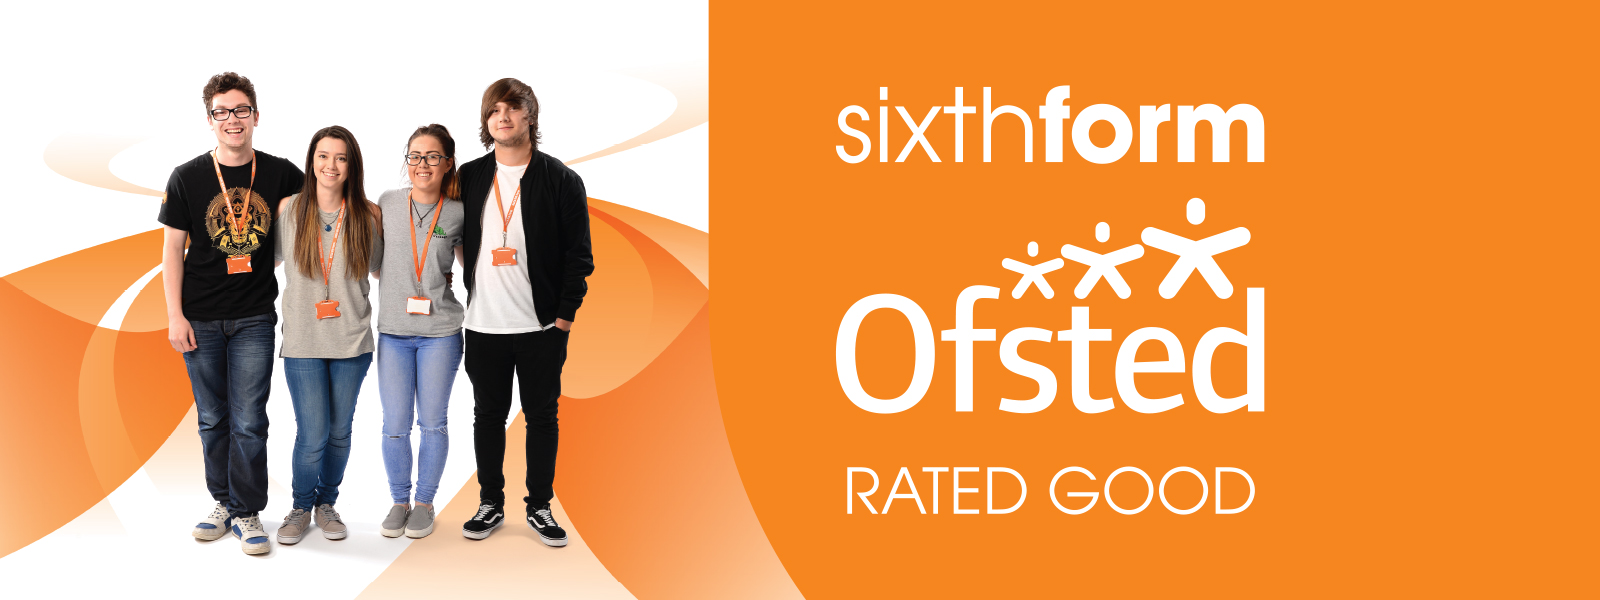 Sixth Form Ofsted